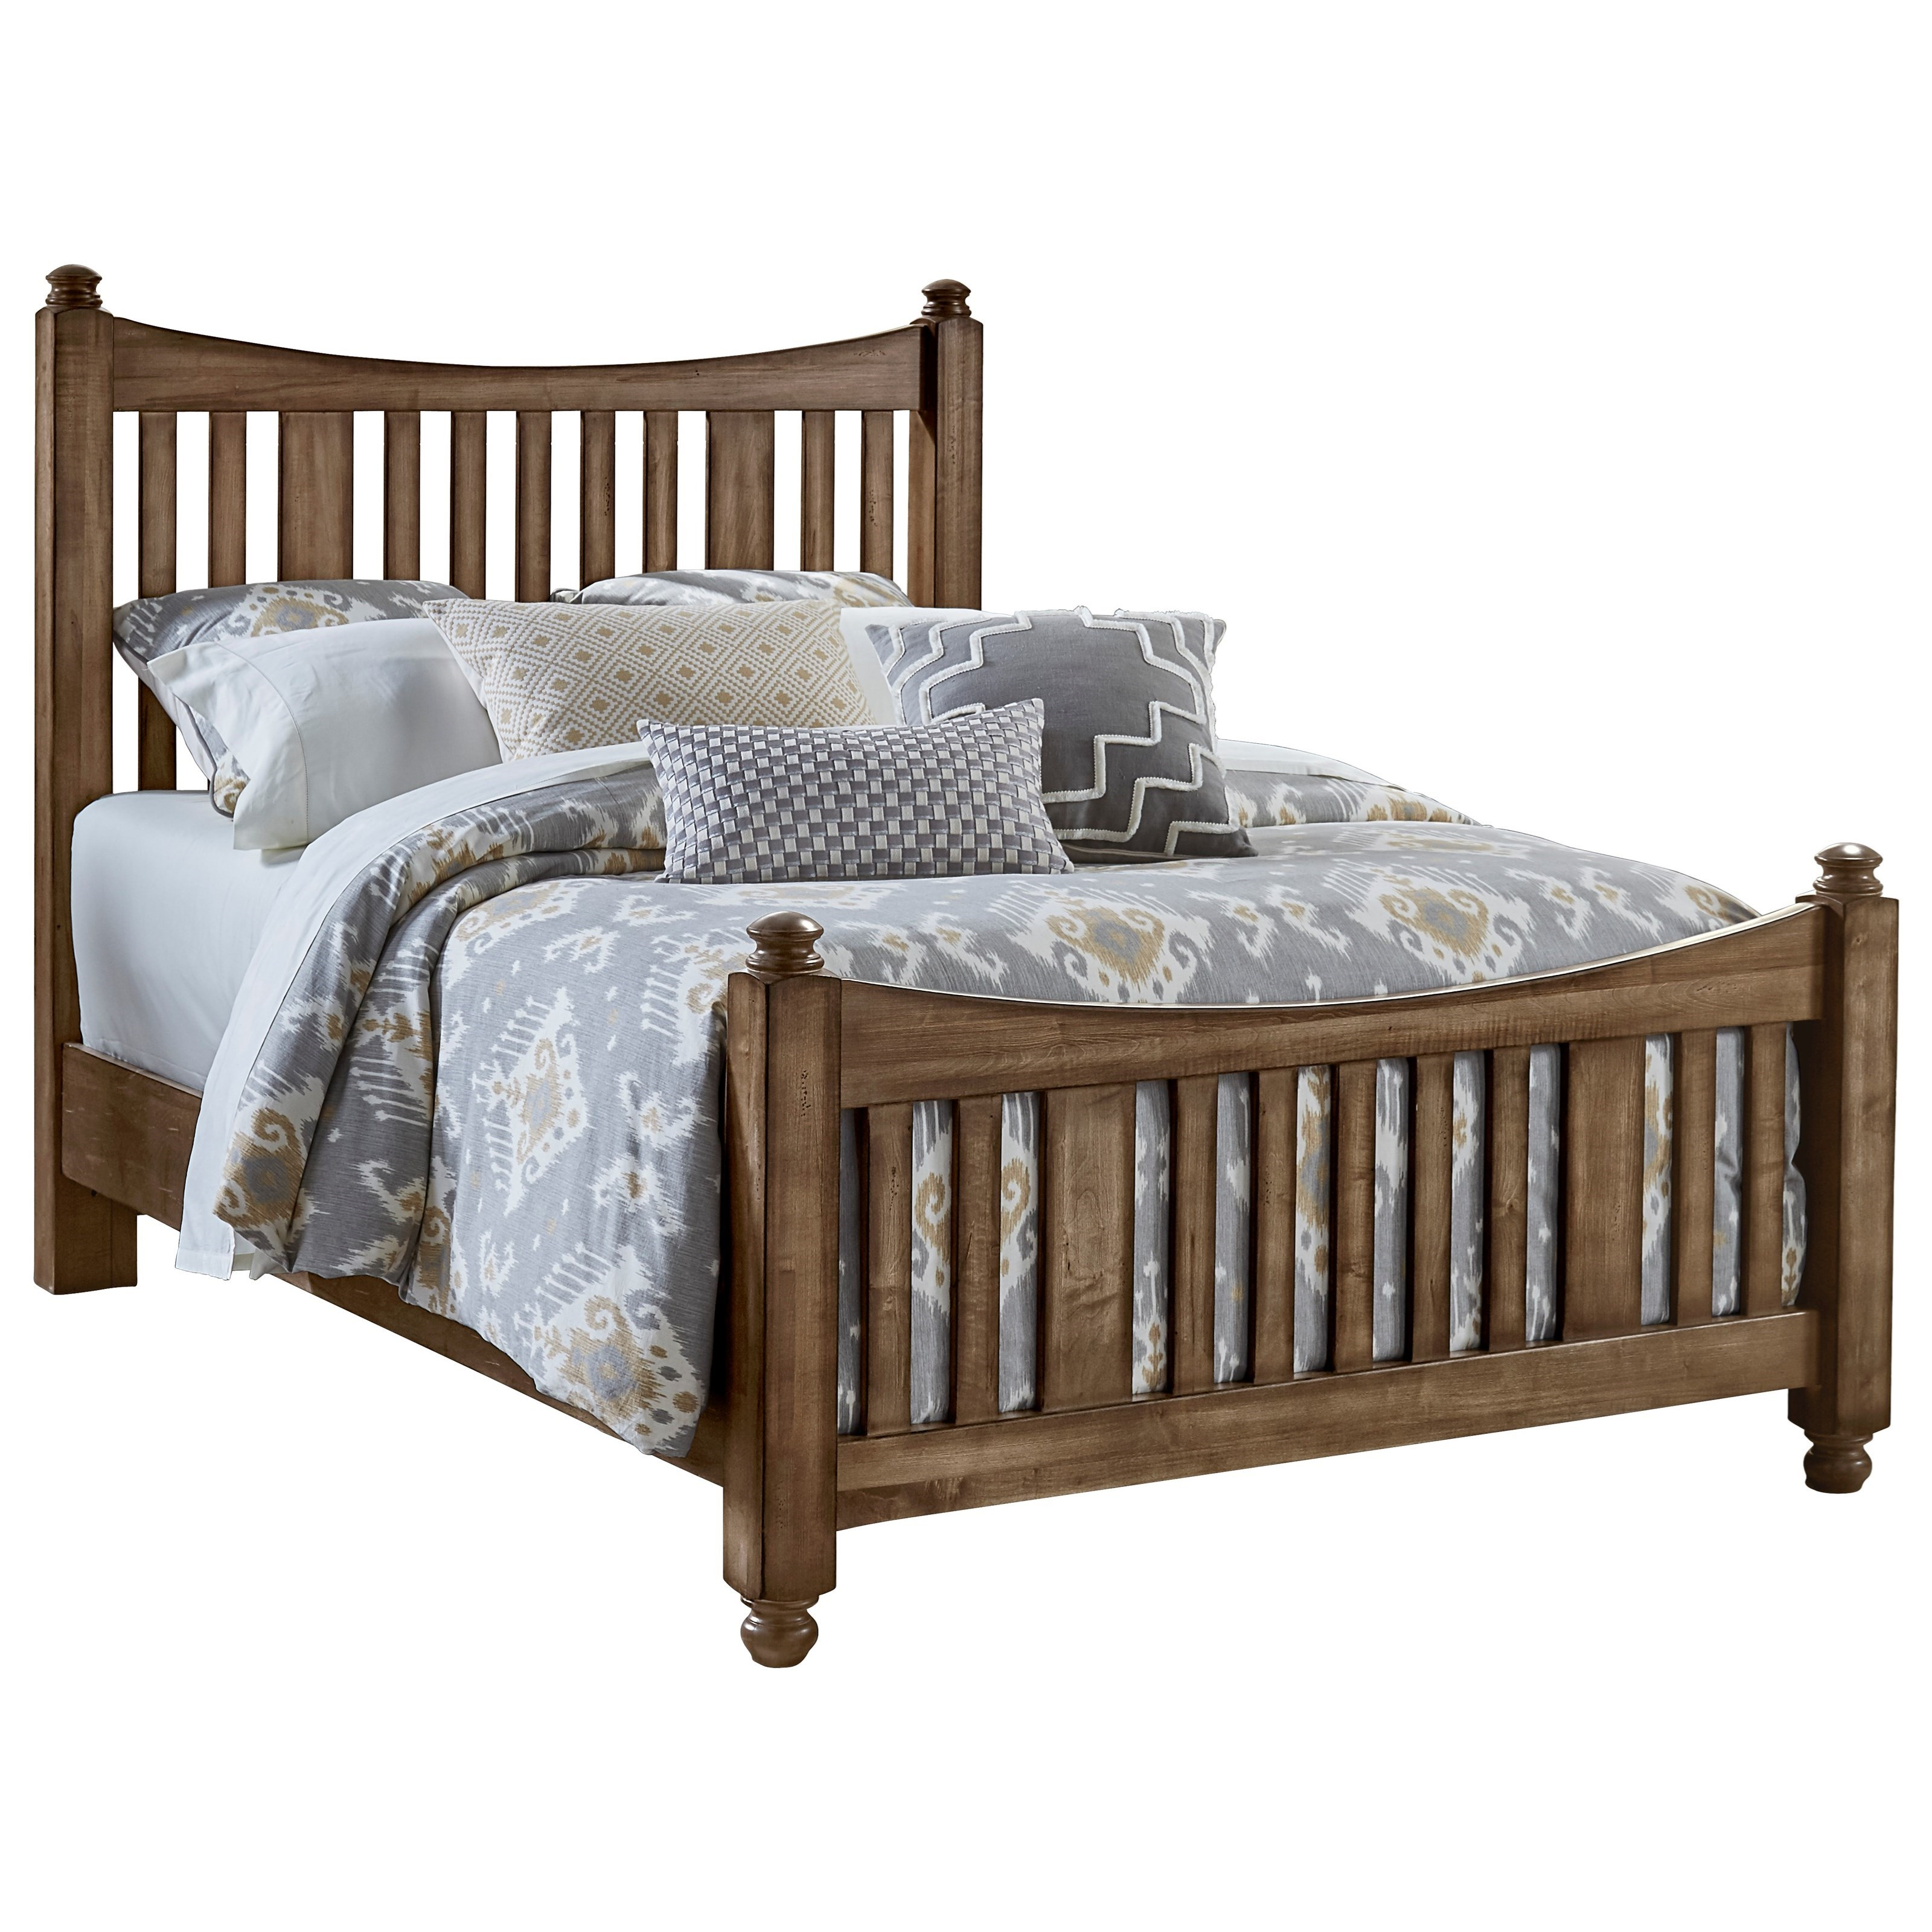 Maple Road Queen Slat Poster Bed by Artisan & Post at Suburban Furniture